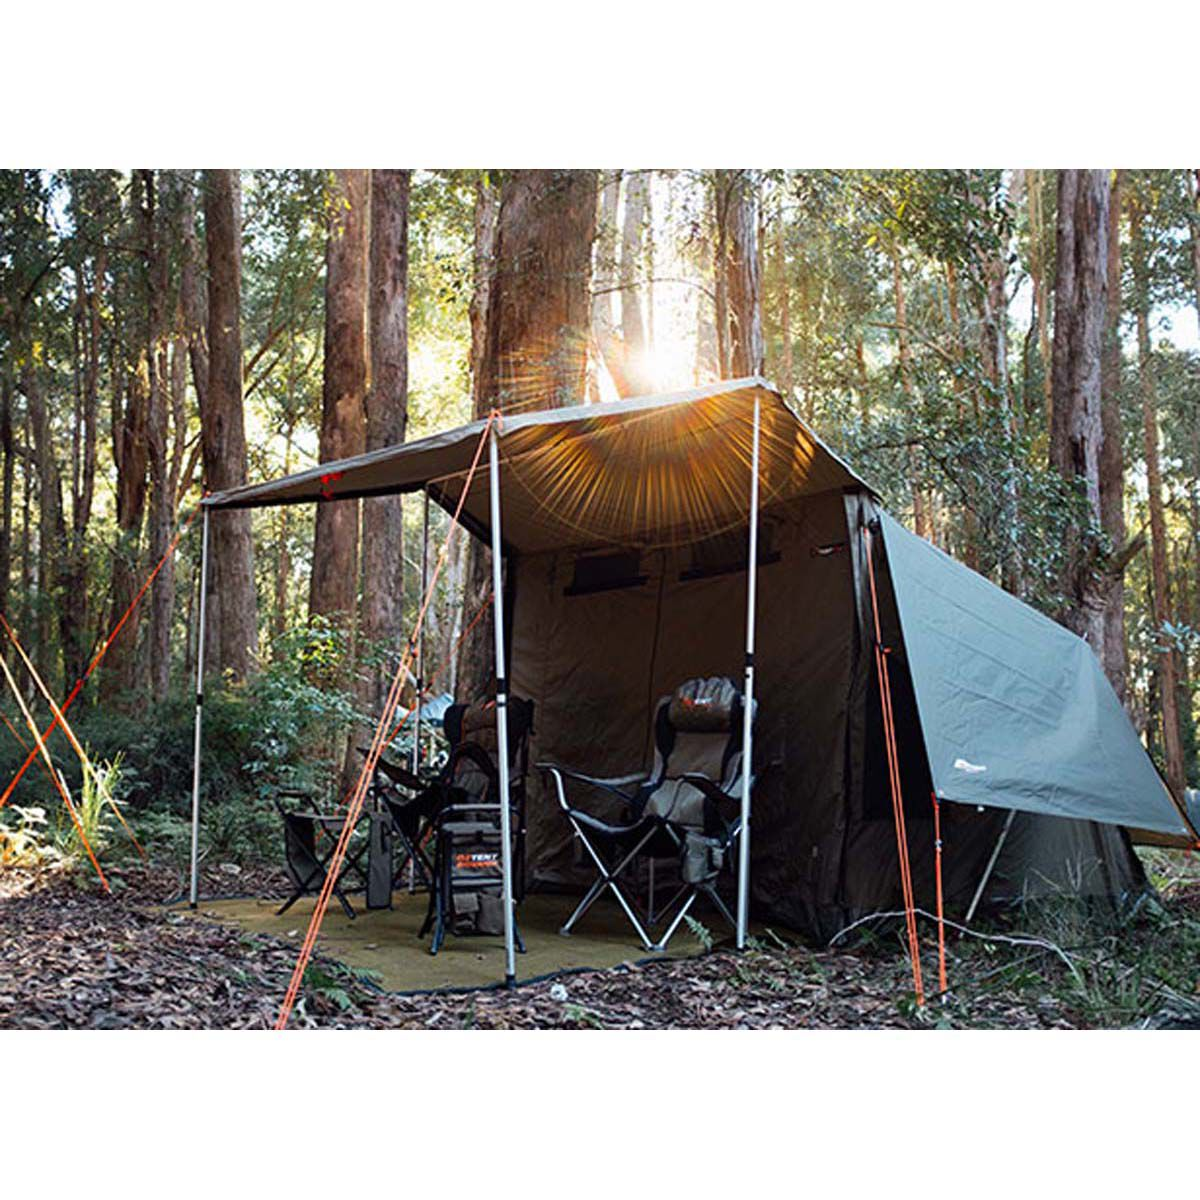 Oztent RV5 Touring Tent 5 Person  bcf_hi-res  sc 1 st  BCF Australia & Oztent RV5 Touring Tent 5 Person | BCF